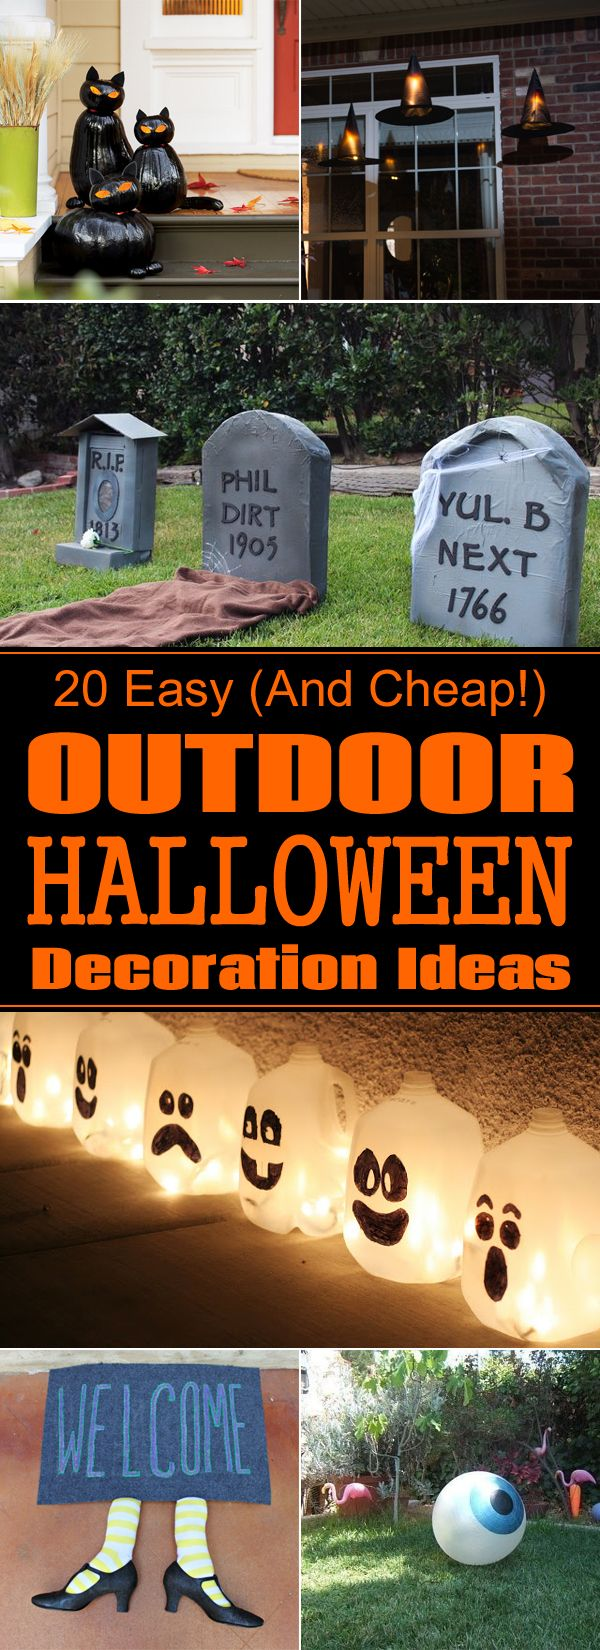 20 easy and cheap diy outdoor halloween decoration ideas - Cheap Homemade Outdoor Halloween Decorations